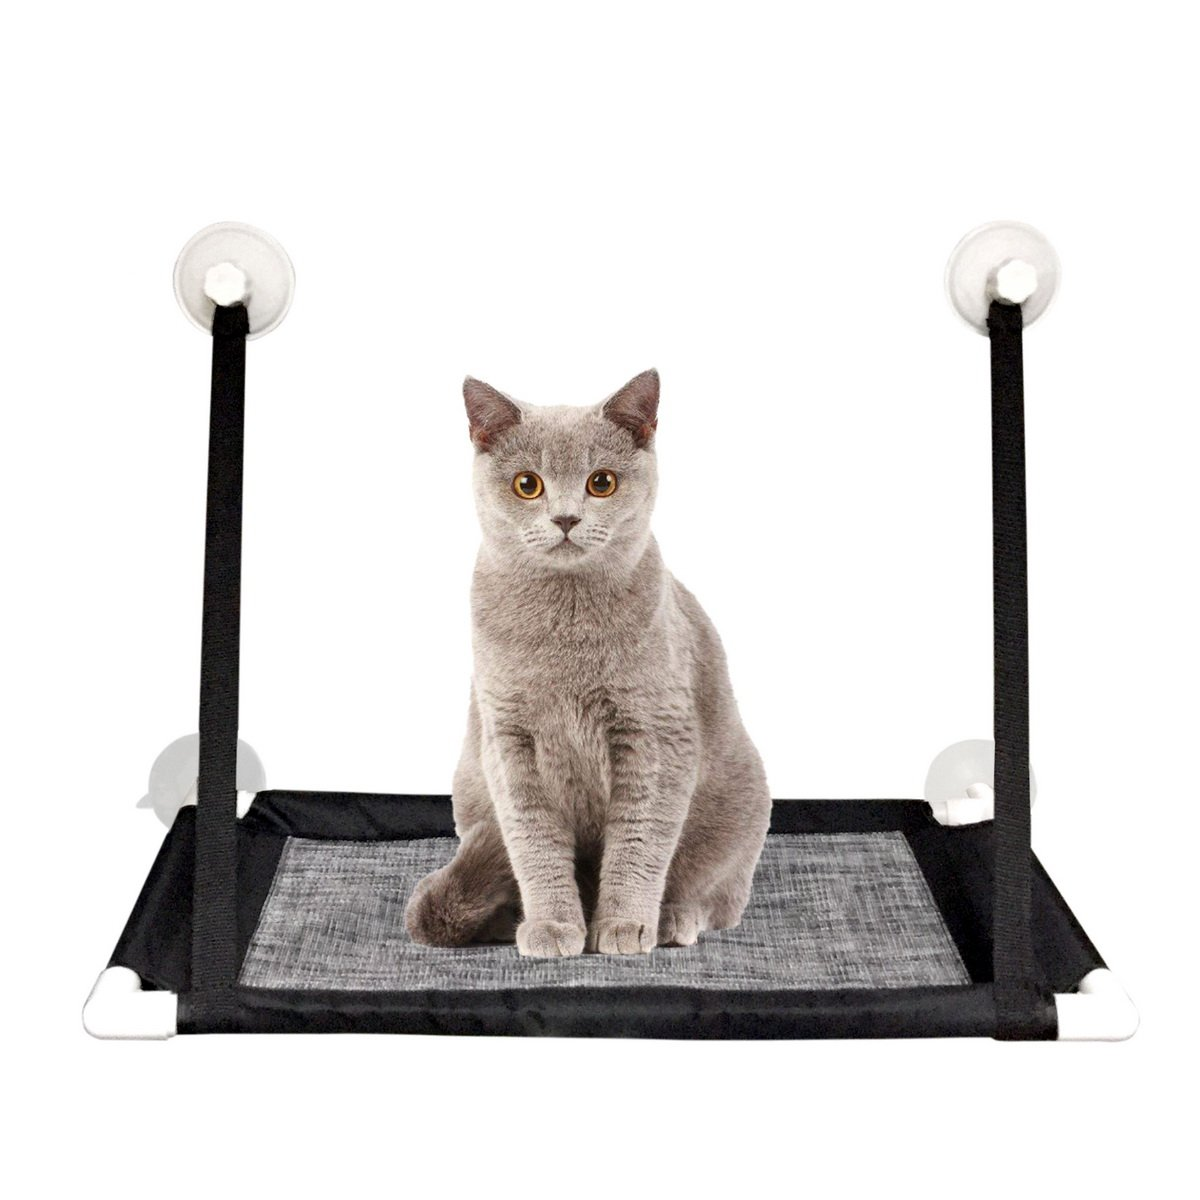 MAIKEHIGH Cat Hammock Window Mount Perches Resting Pet Bed Kitty Window Seat 4 Suction Cups Holds Up To 20lbs,Black